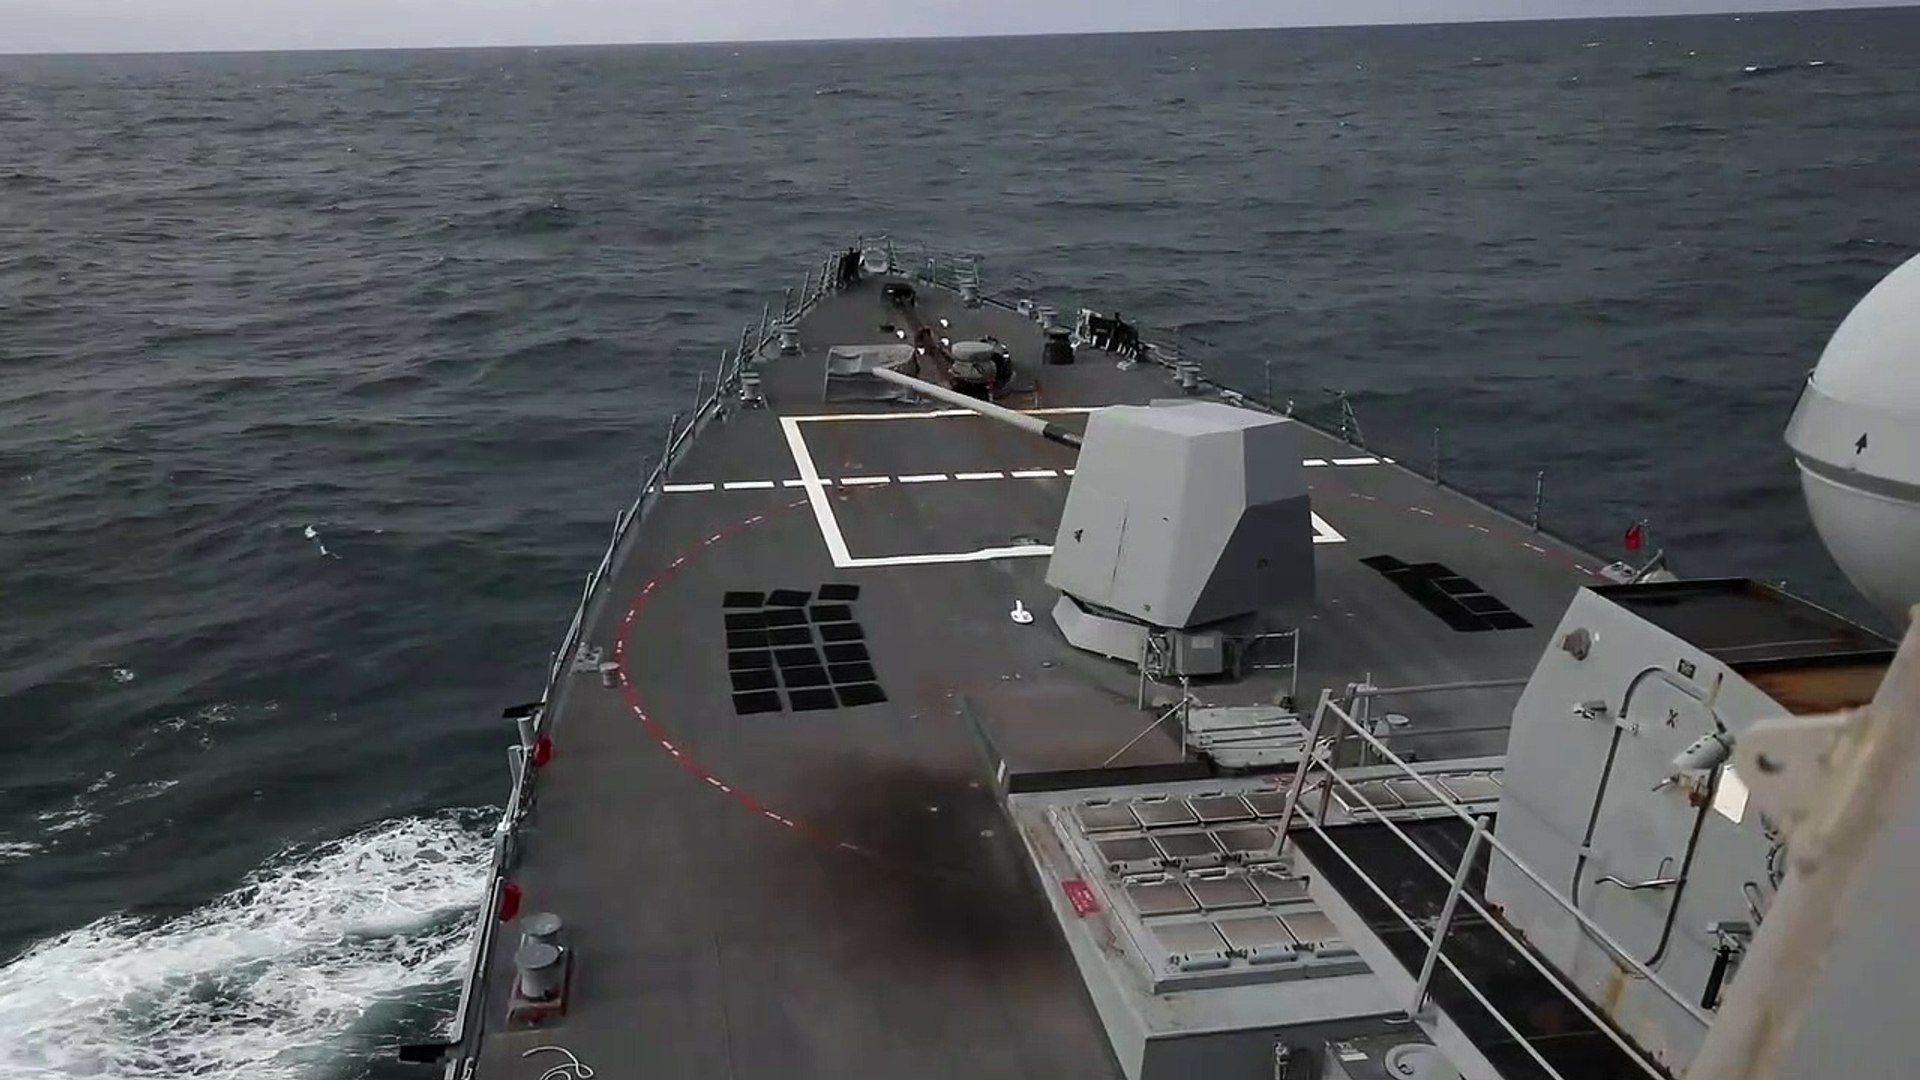 US Military News • US Navy Guided-Missile Cruiser Conducts RAS • Philippine Sea